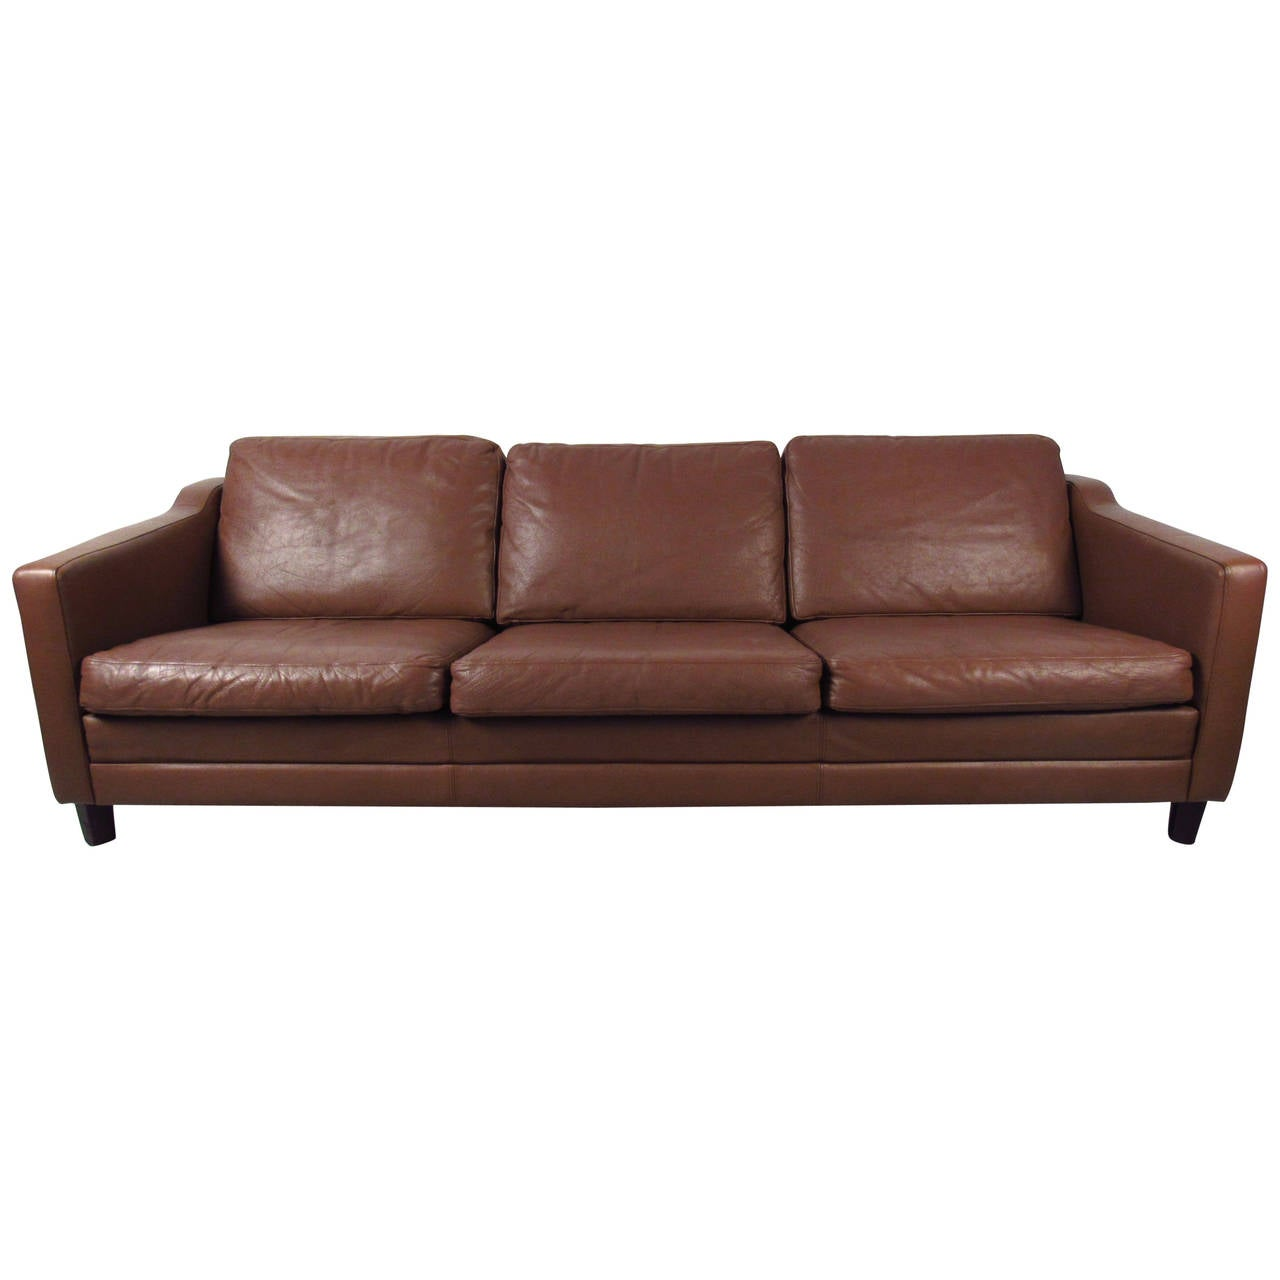 Mid century modern danish leather sofa in the style of for Mid century modern leather chairs